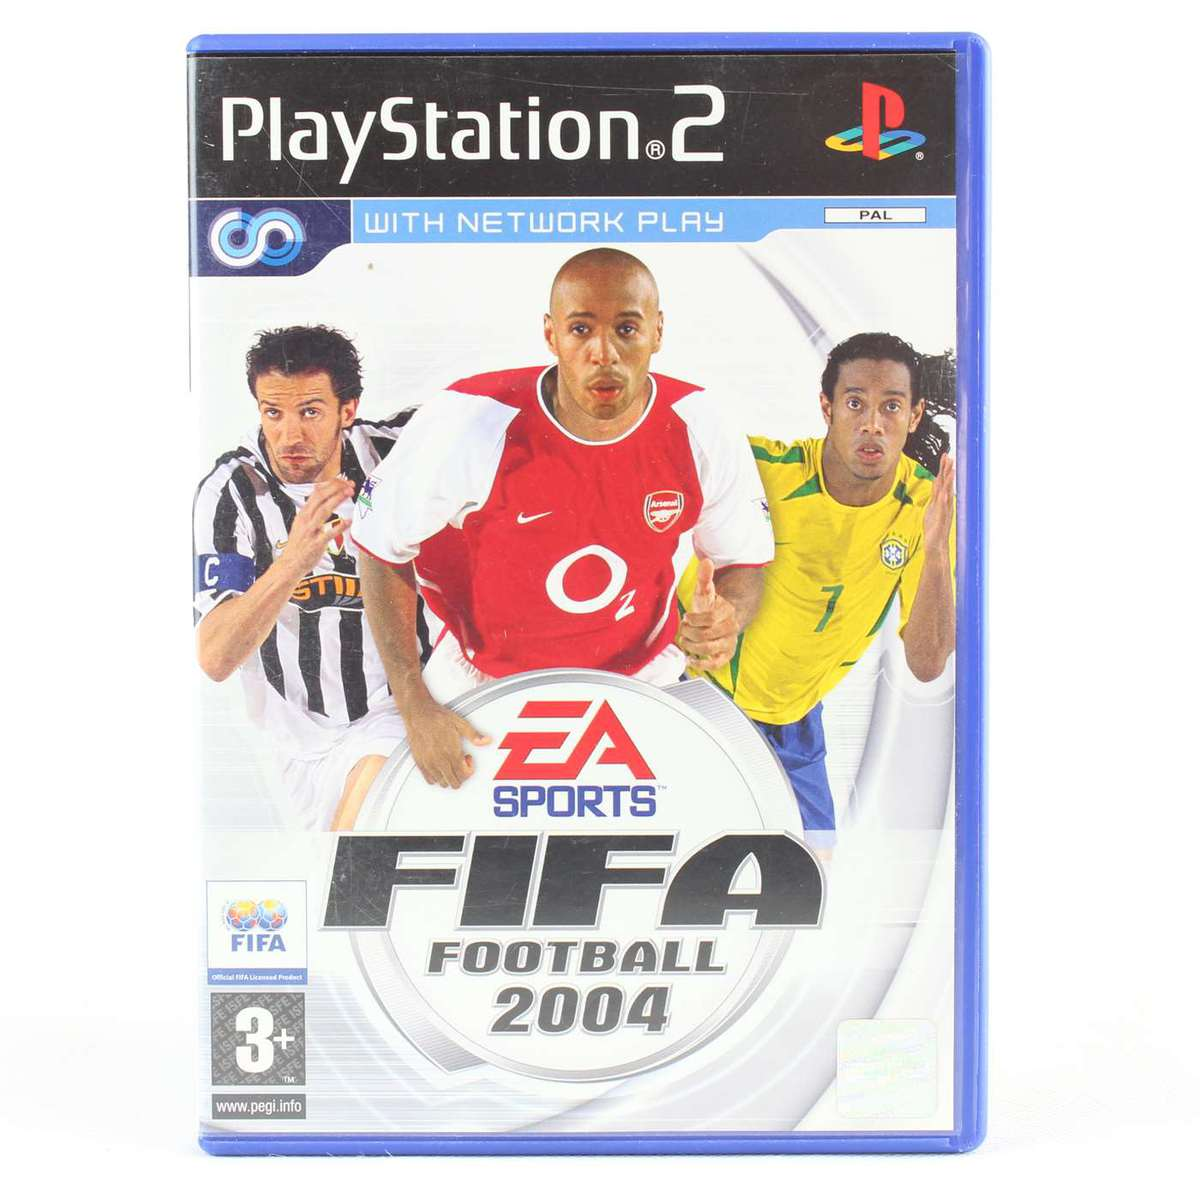 FIFA Football 2004 (Playstation 2)